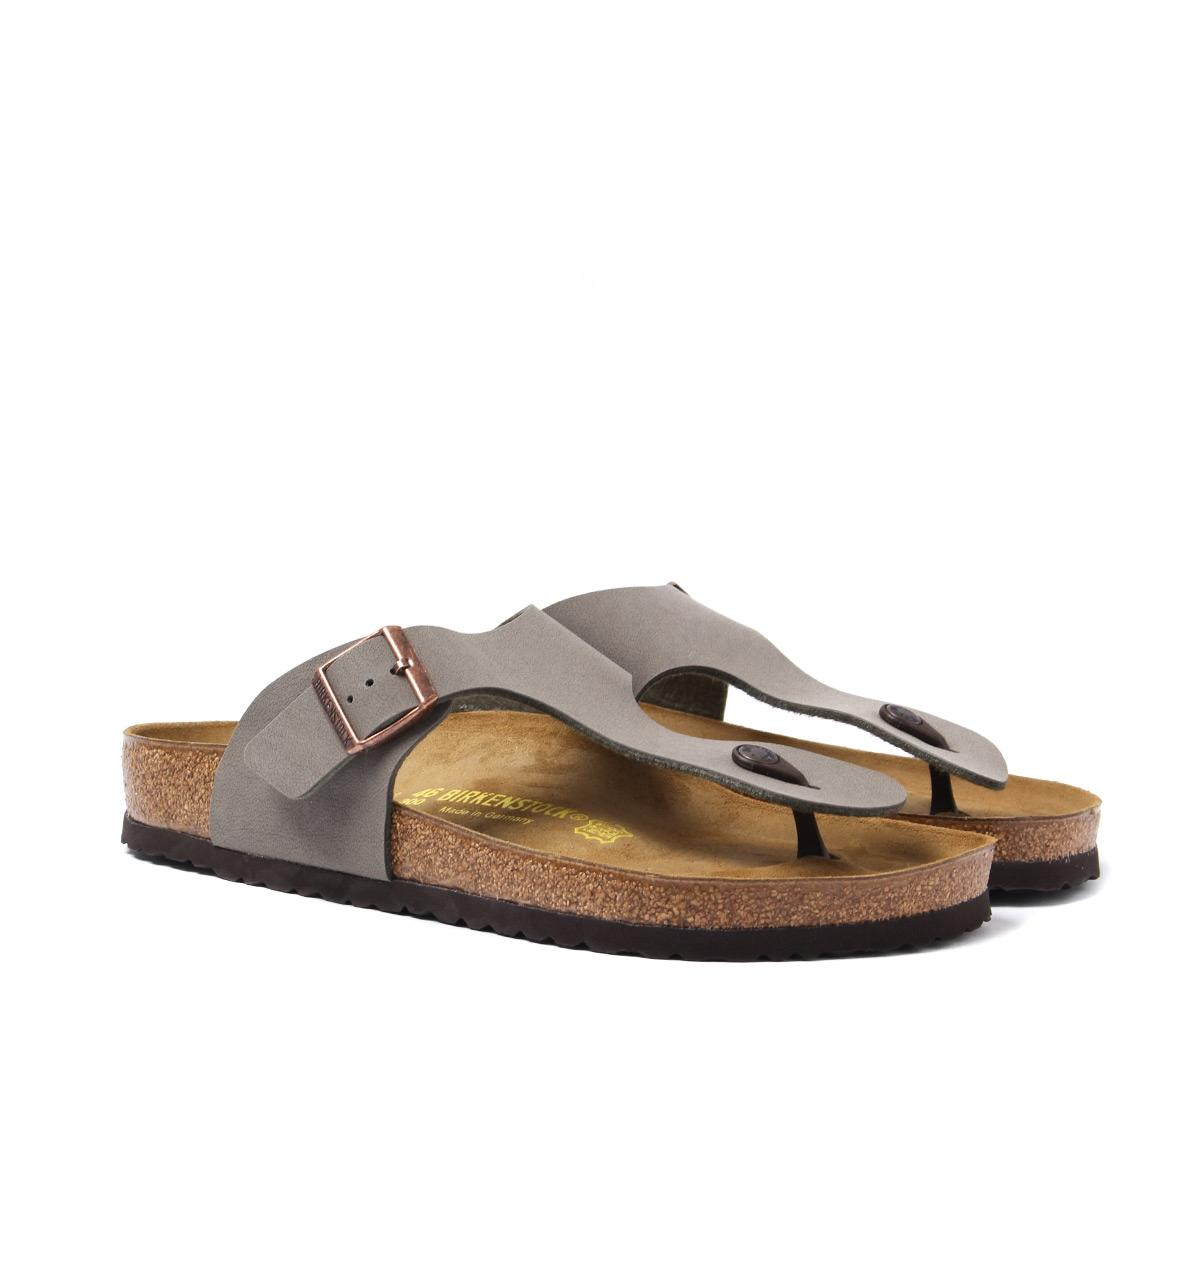 6b83c76e5e9 Birkenstock Ramses Stone Toe Strap Sandals in Brown - Save 7% - Lyst